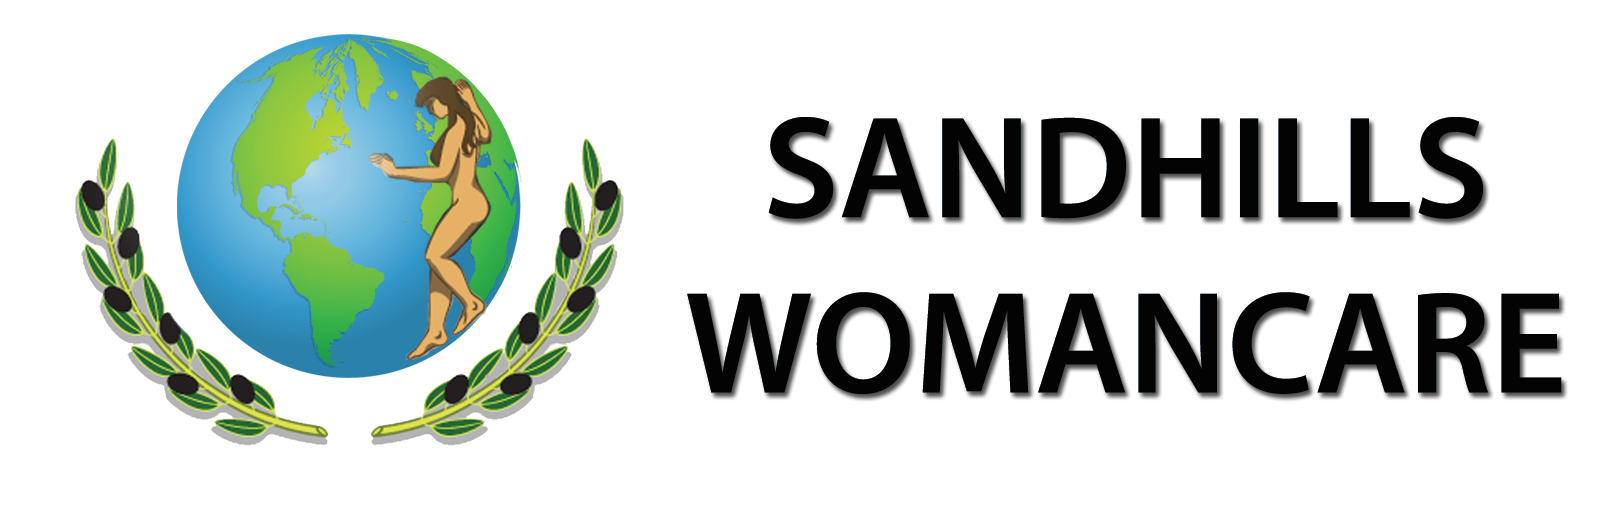 Sandhills Woman Care Just Another Wordpress Site